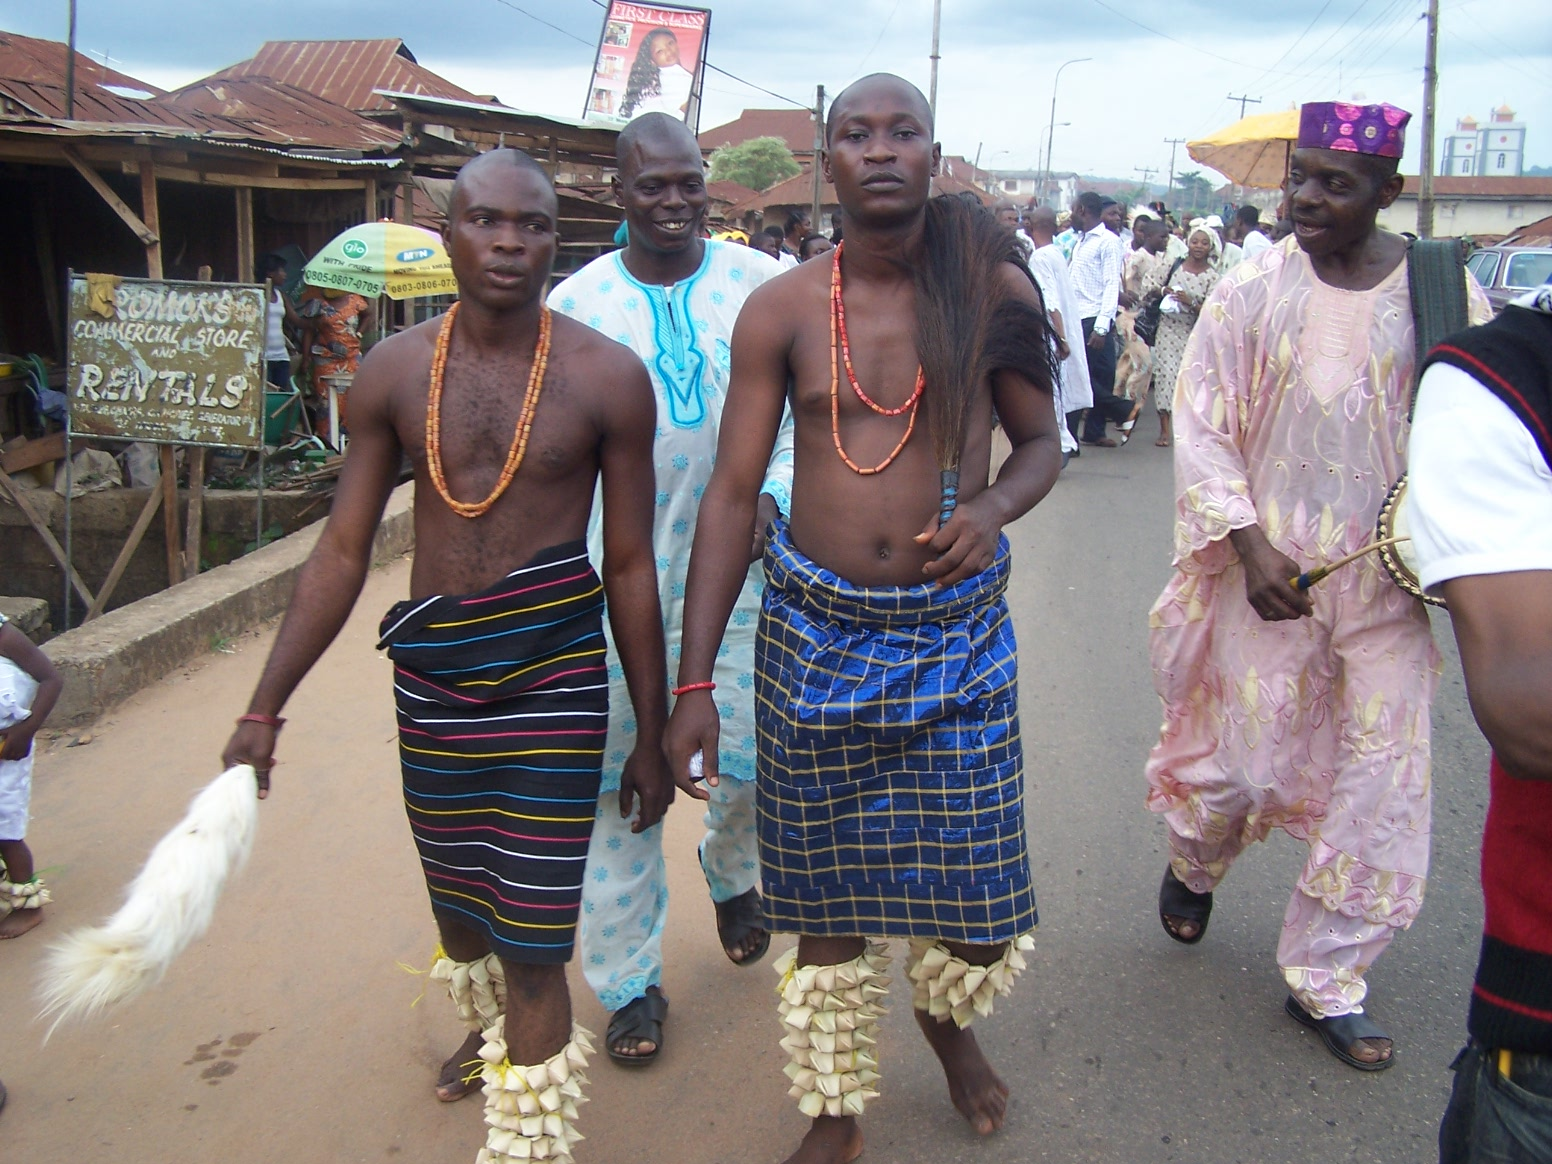 102 2931 Ife People: The Ancient Artistic, Highly Spiritual And The First Yoruba People